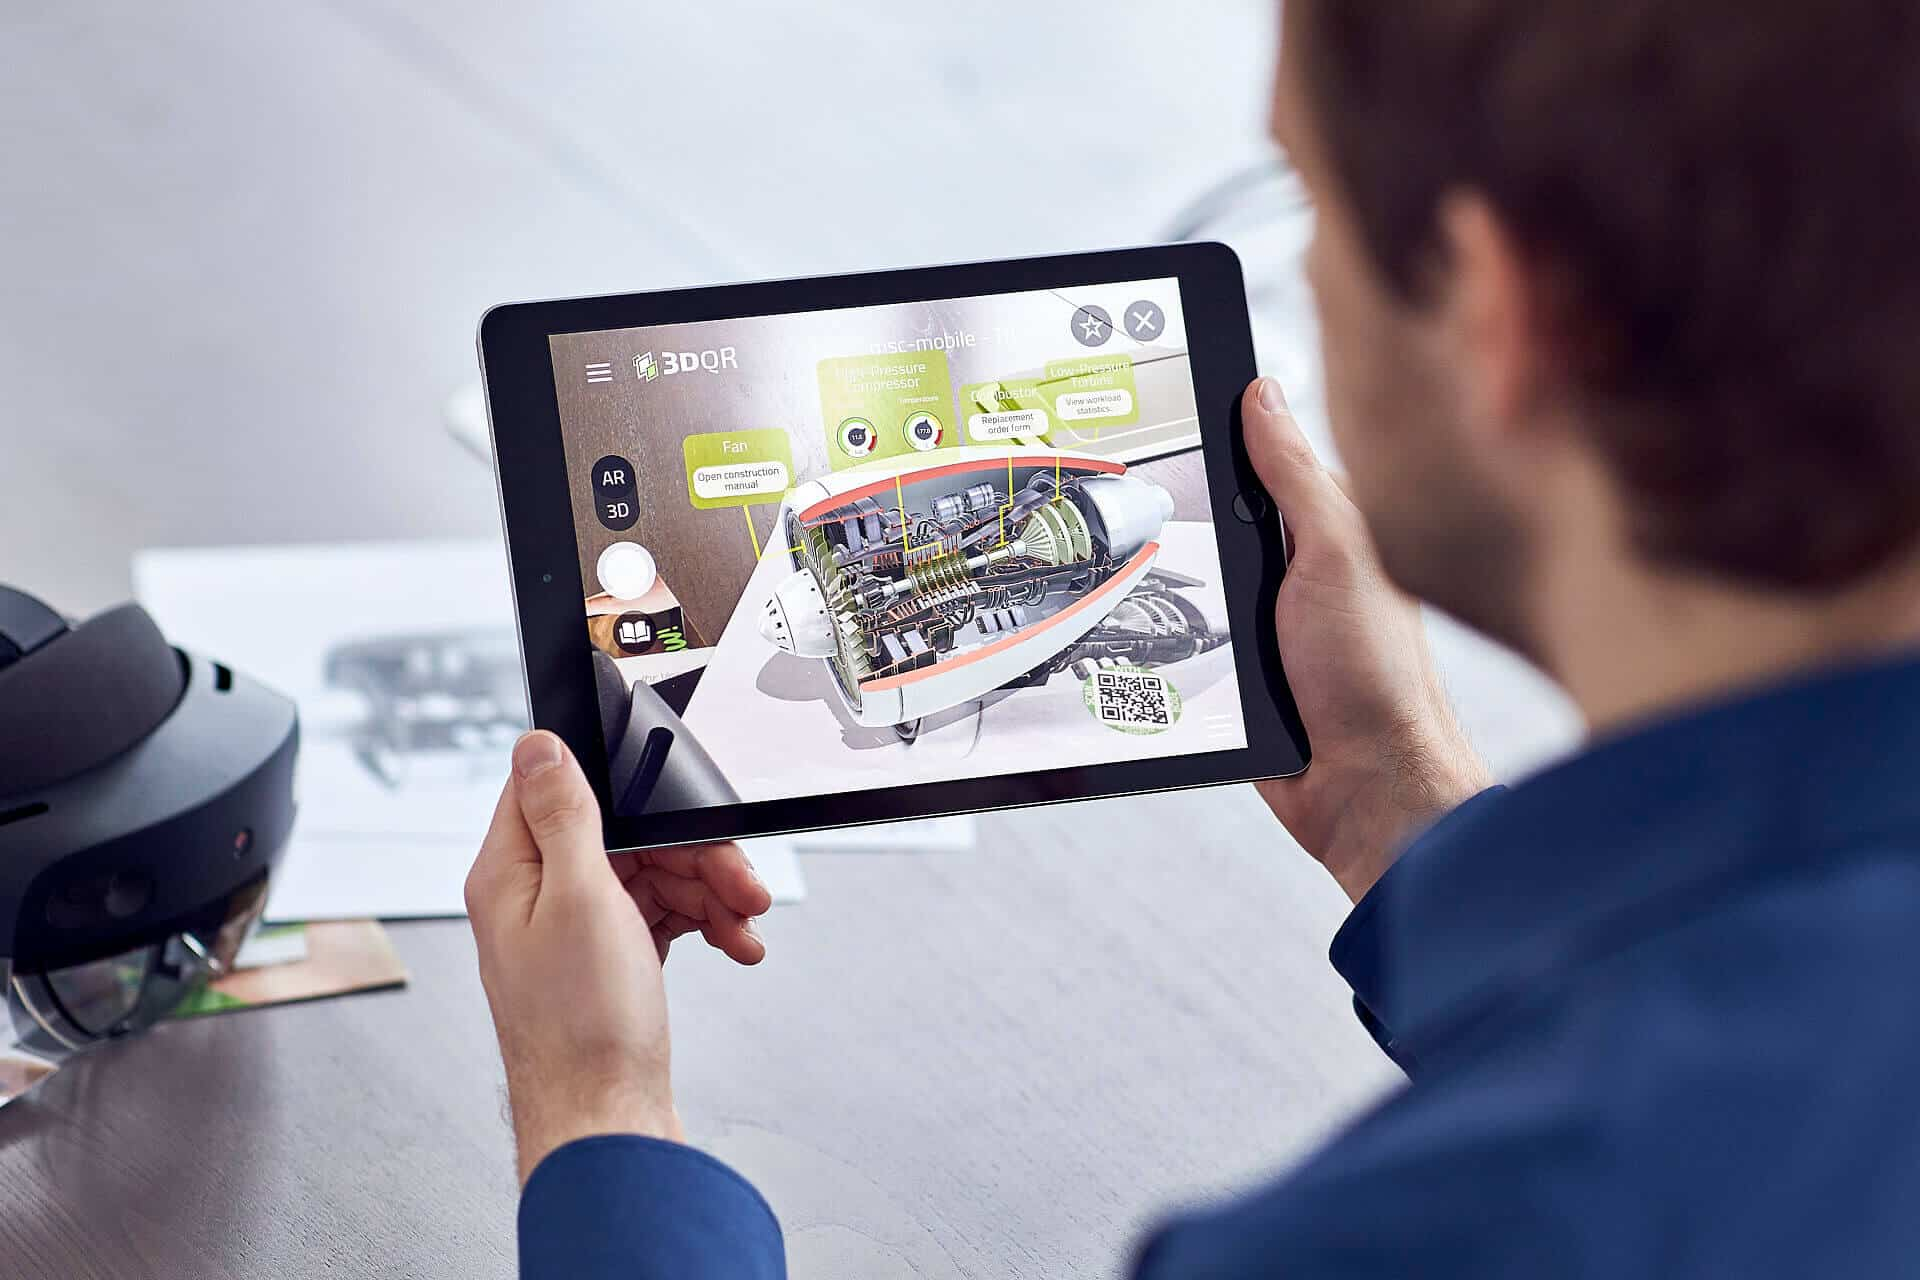 3DQR Augmented Reality App